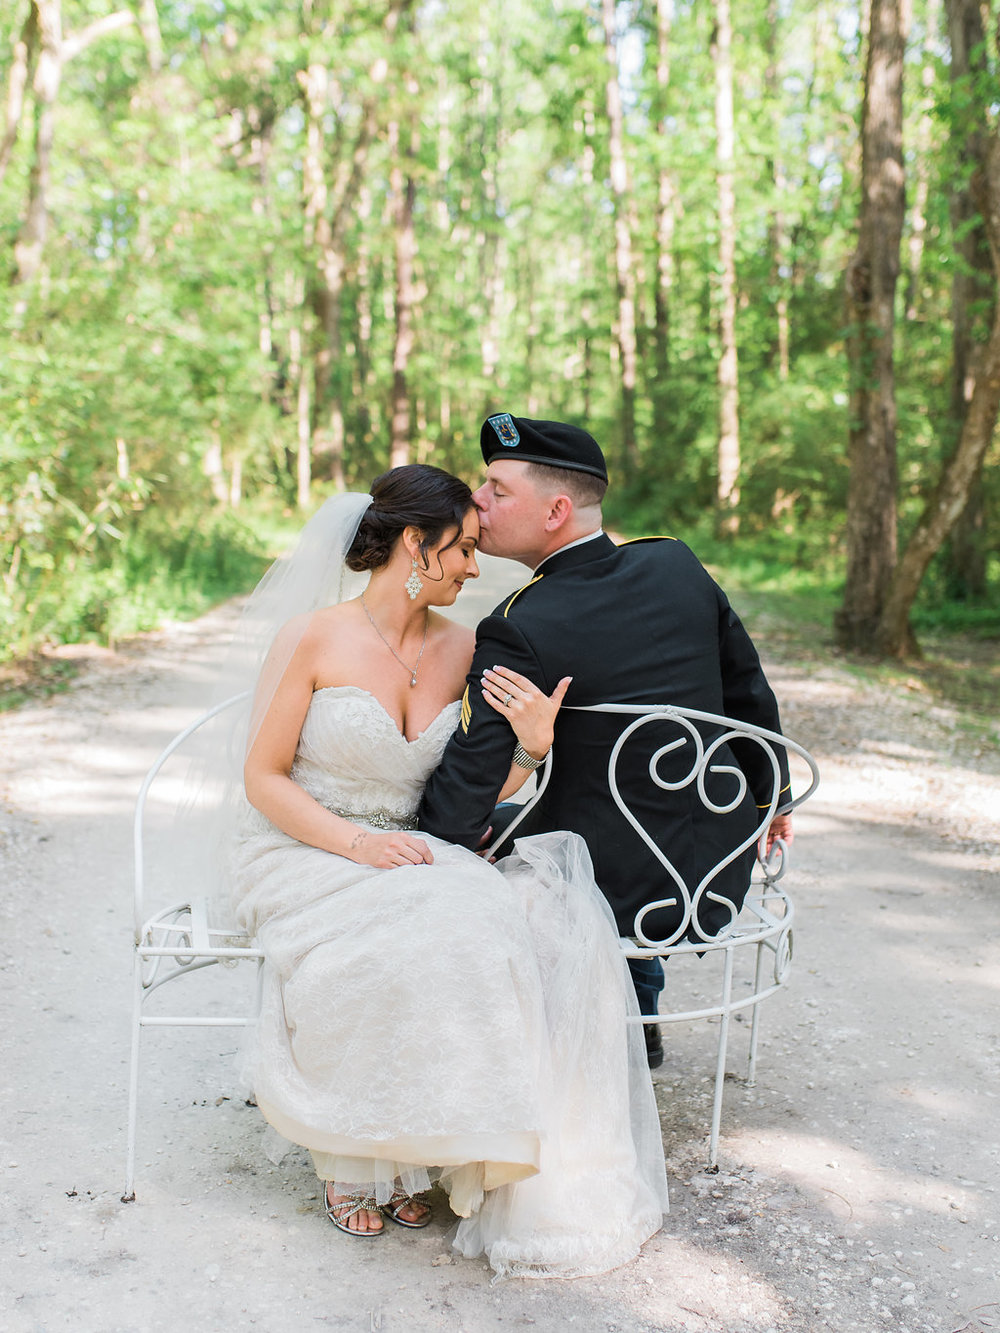 ivory-and-beau-bridal-boutique-lipski-surprise-wedding-5d-photography-military-wedding-savannah-savannah-military-bride-surprise-wedding-15.jpg